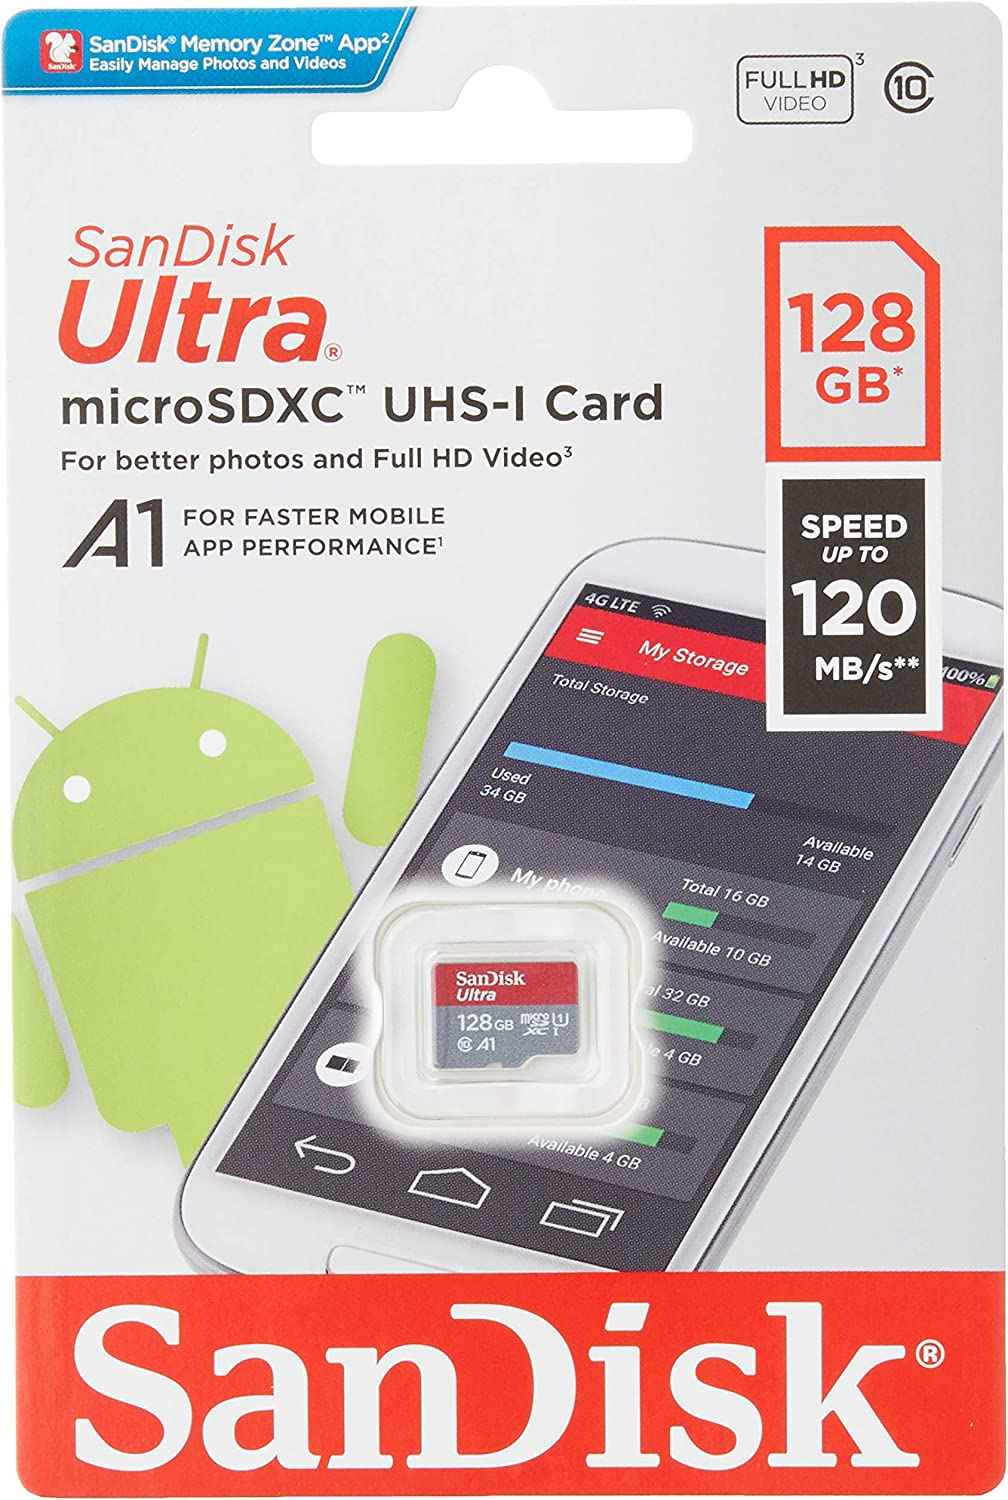 by SanFlash SanDisk Ultra 128GB MicroSDXC Verified for Spice Mobile Stellar Virtuoso Pro 100MBs A1 U1 Works with SanDisk